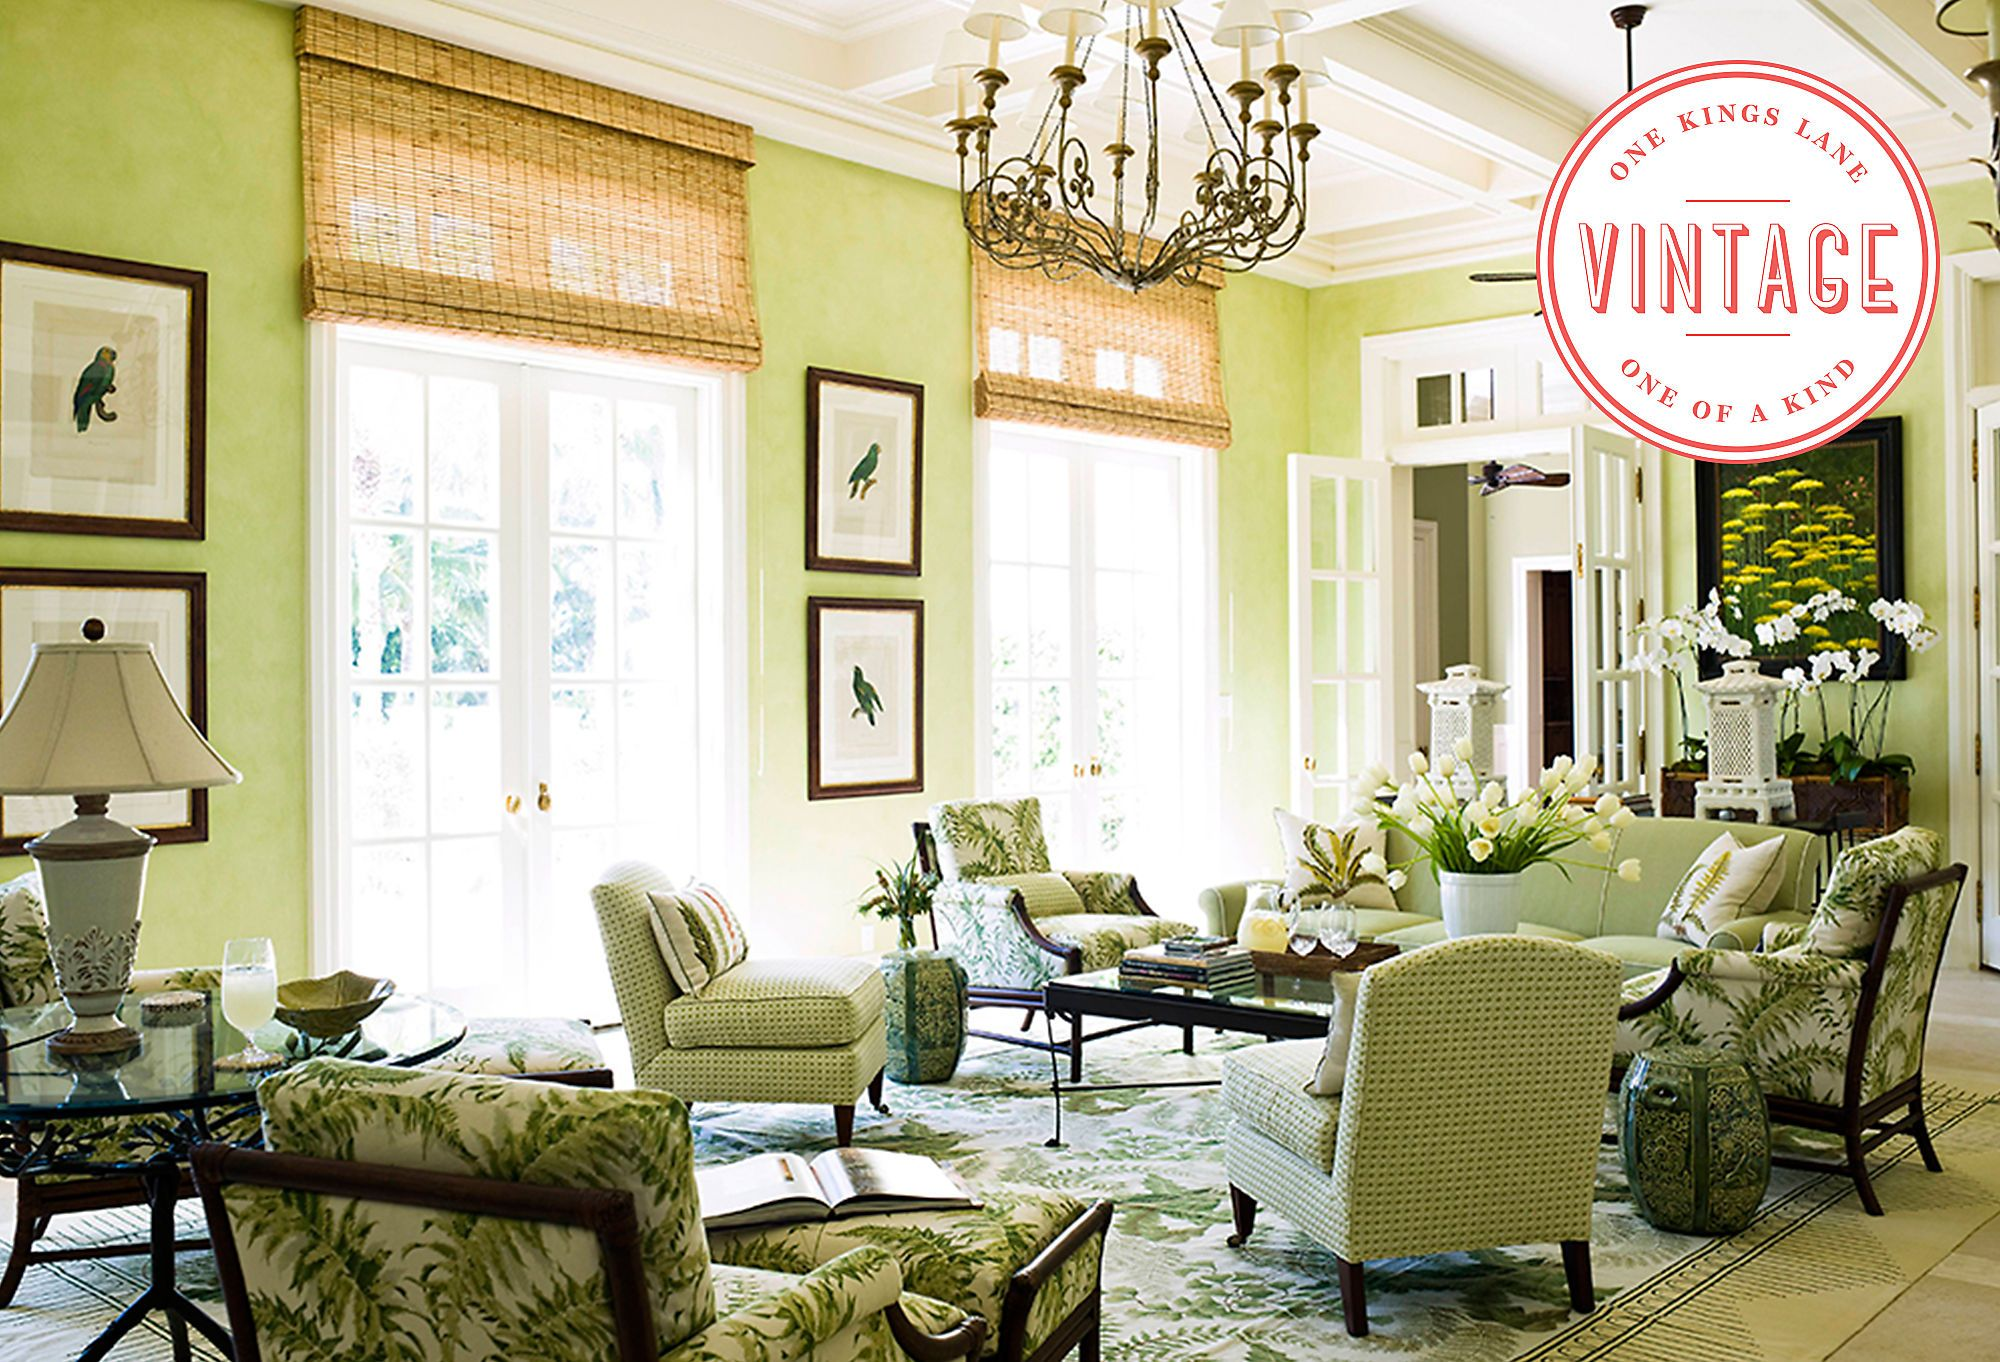 Vintage Decor Southern Country Club Chic Tropical Living Room Living Room Green Living Room Colors